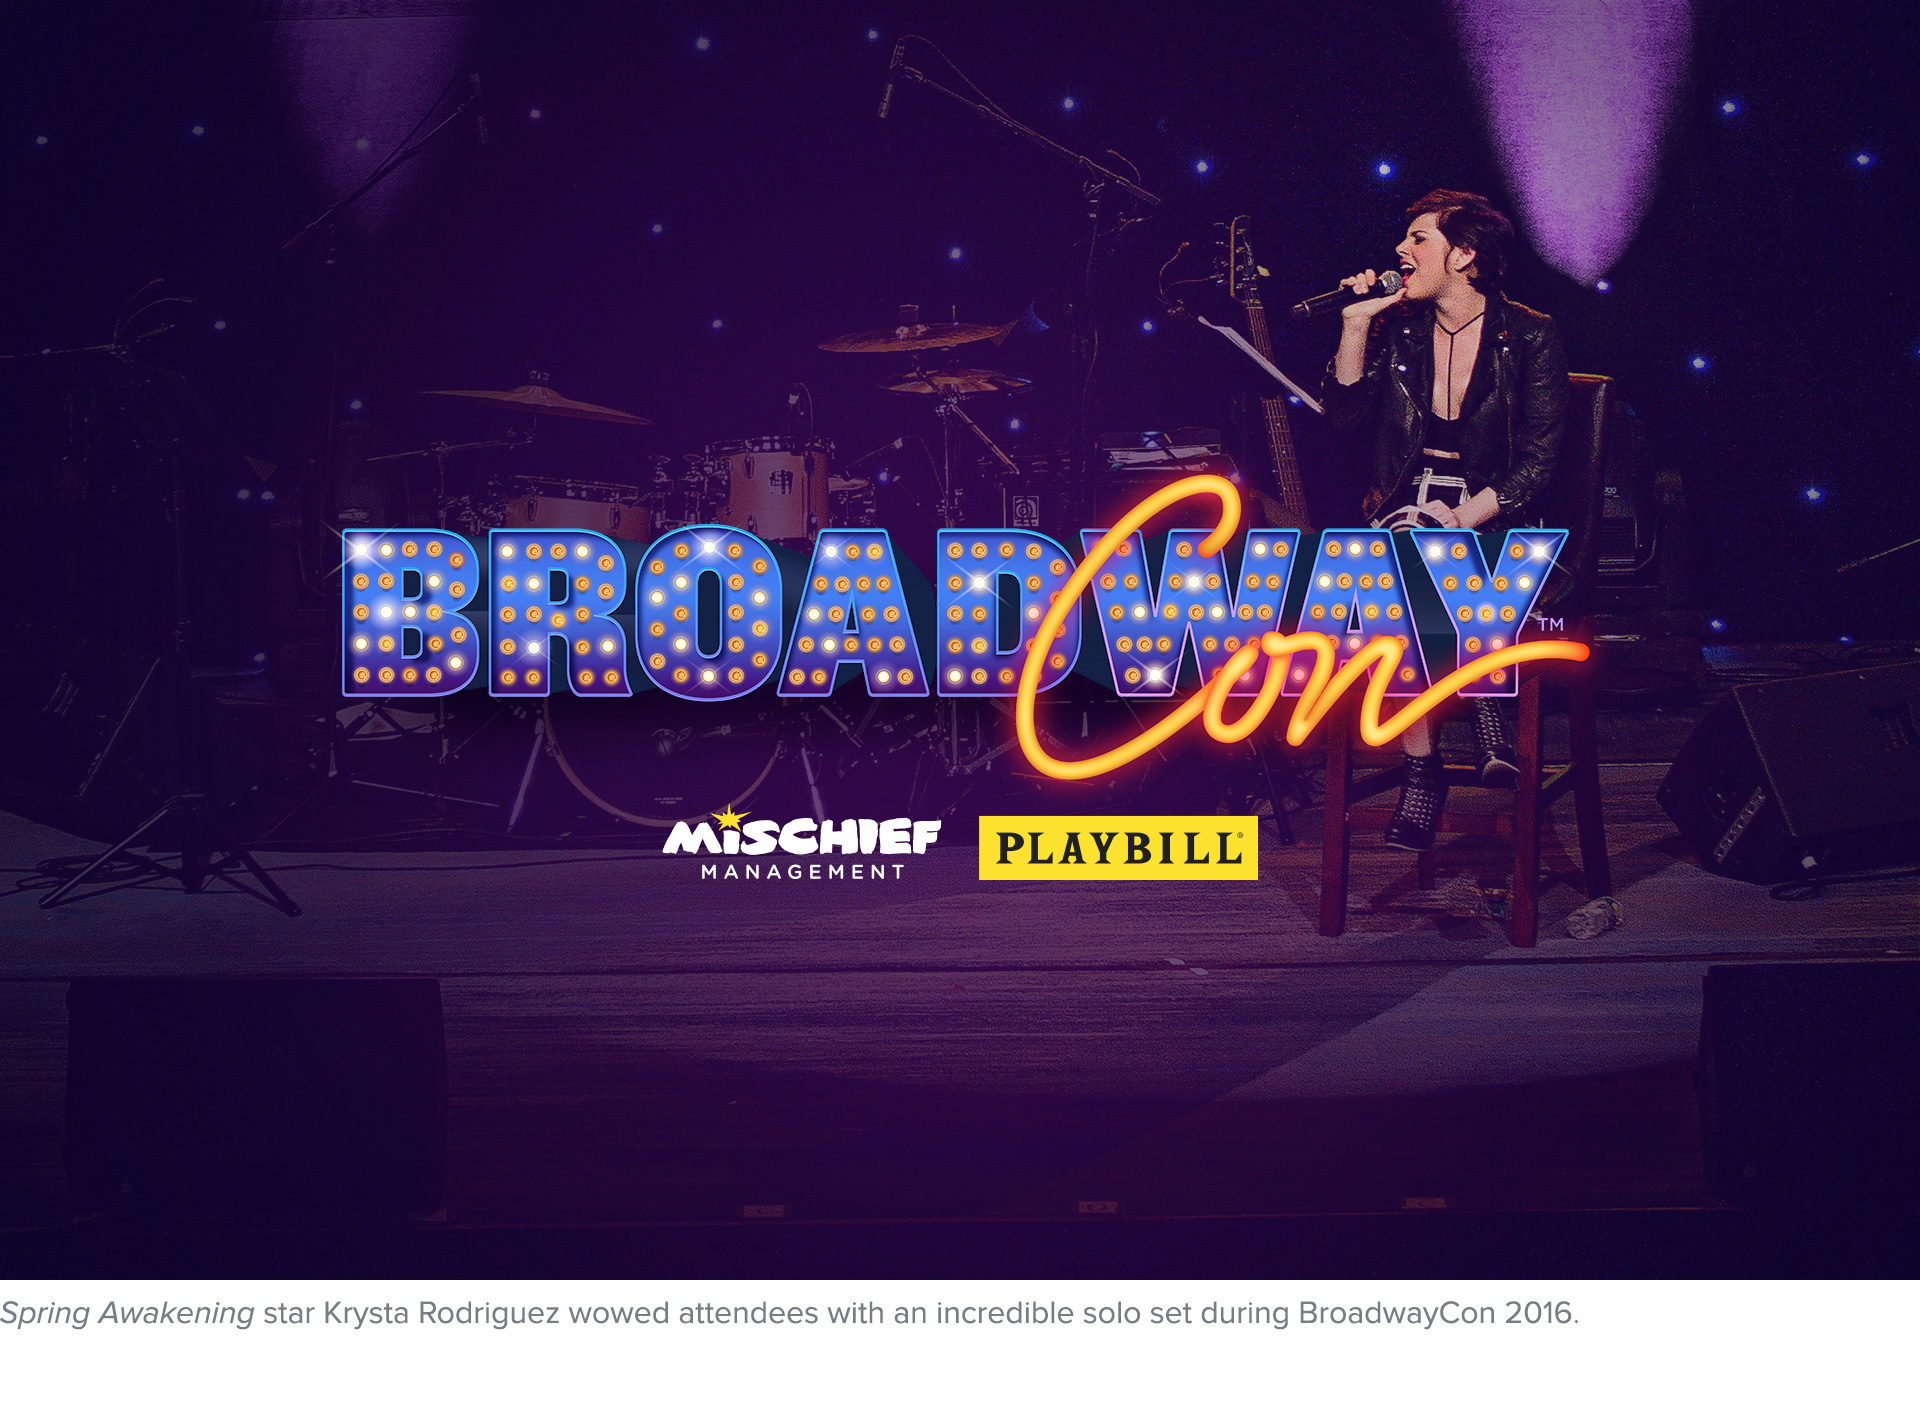 Spring Awakening star Krysta Rodriguez wowed attendees with an incredible solo set at BroadwayCon 2016.